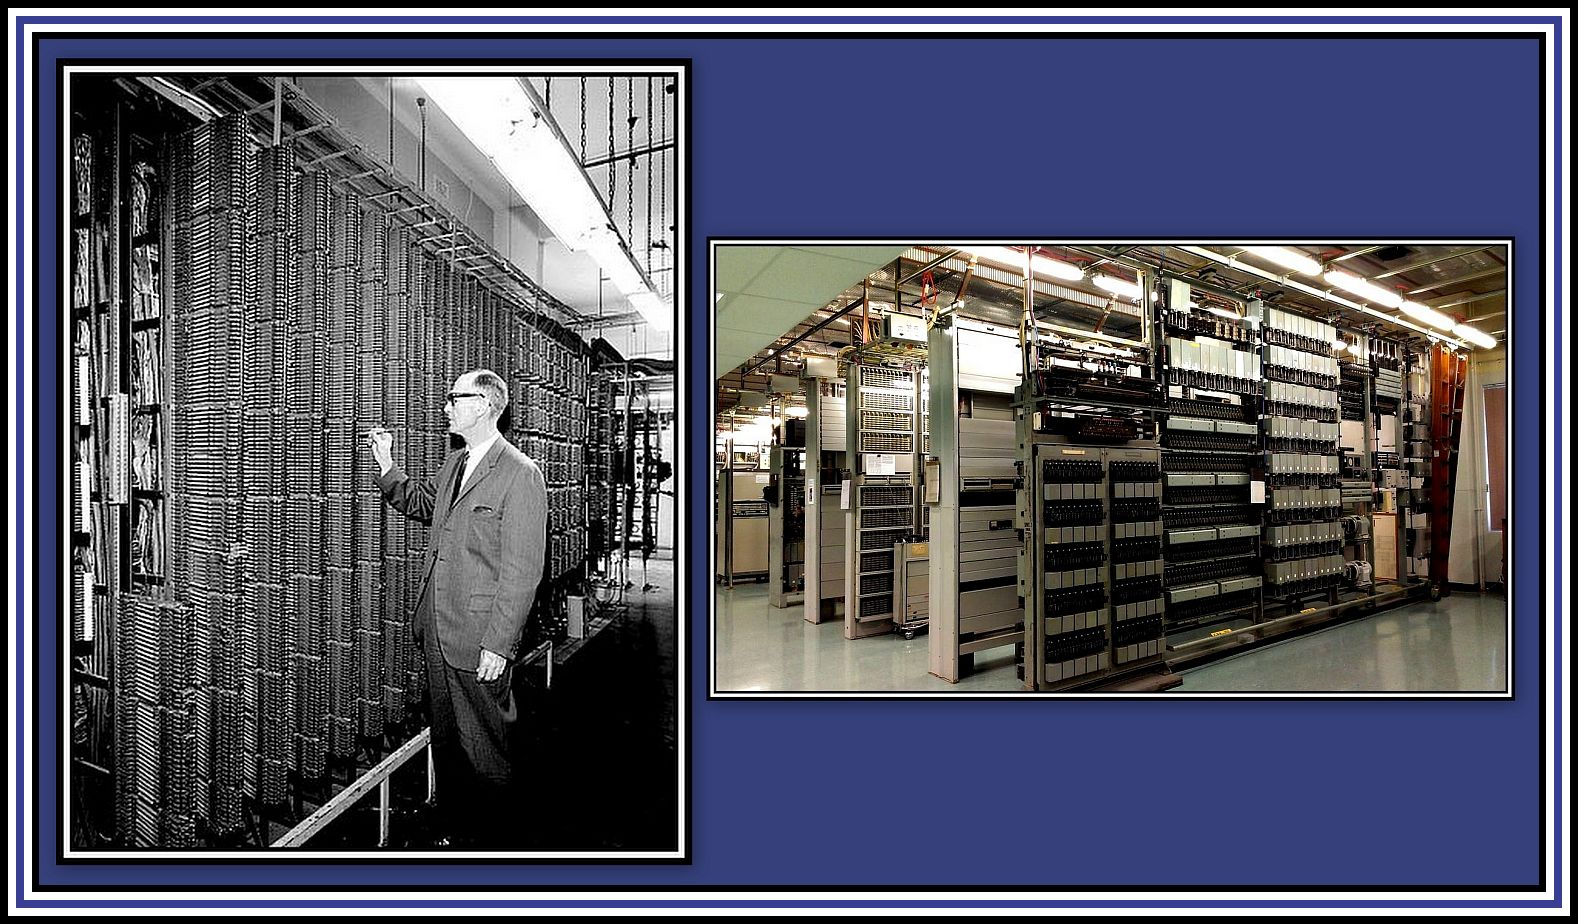 Automated Telephone Exchange Collage